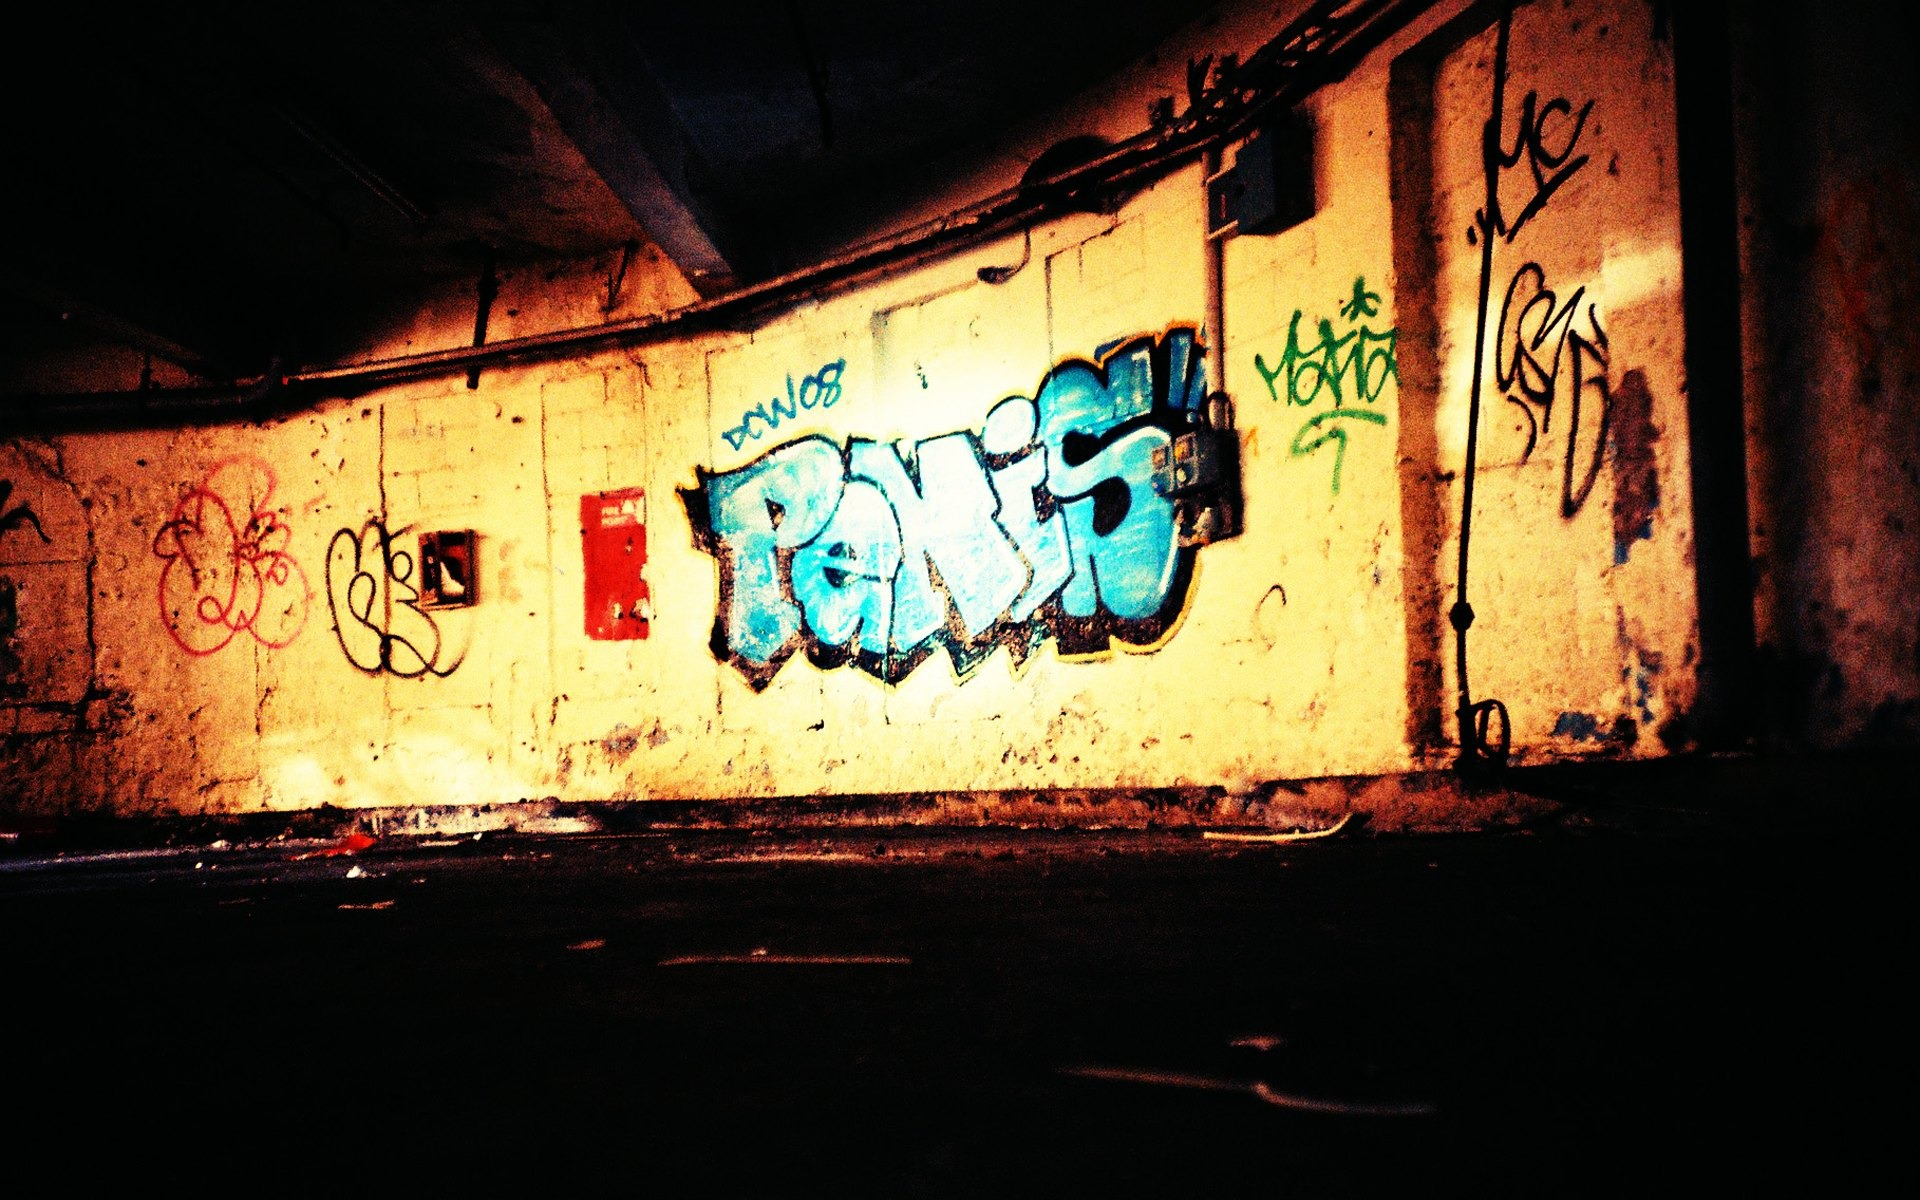 urban graffiti art wallpaper - photo #33